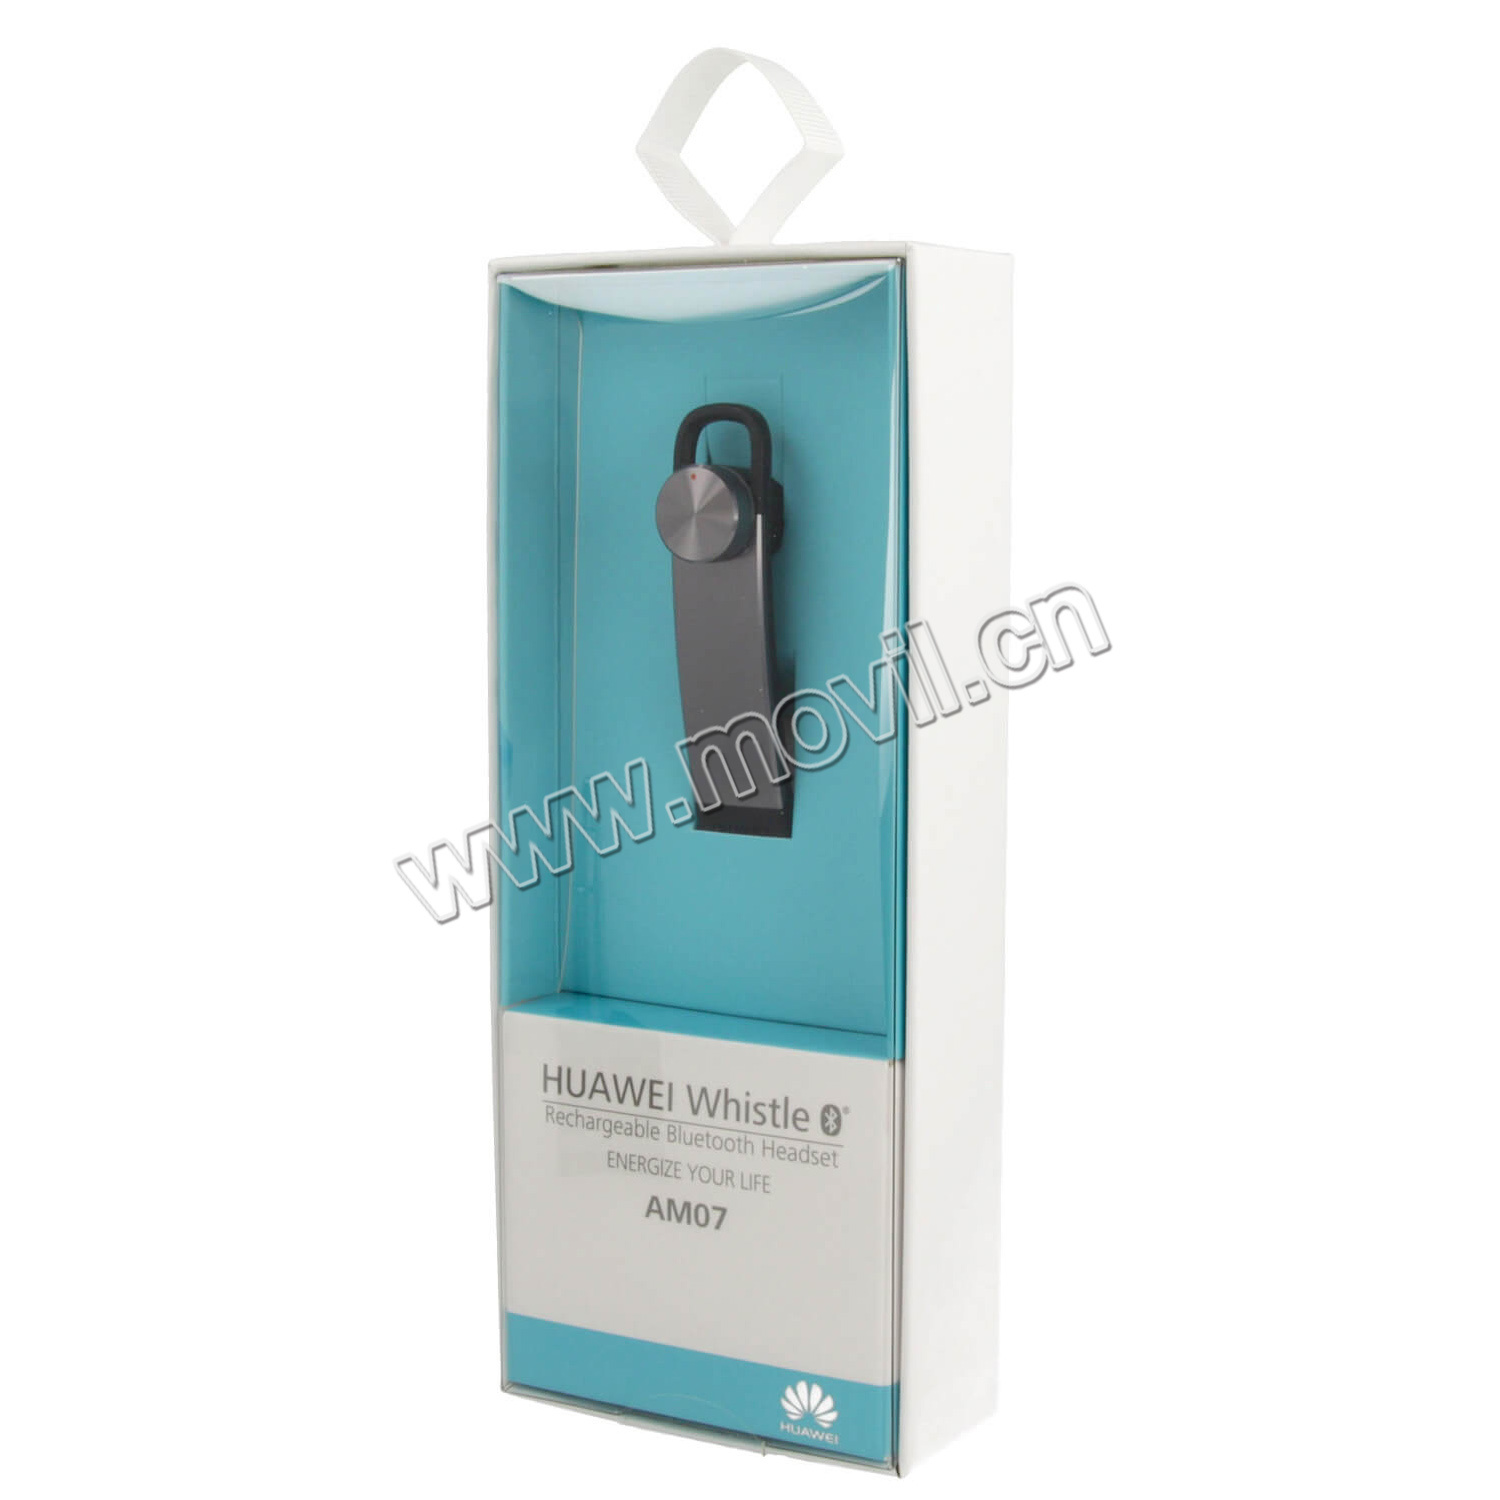 China Huawei Am07 Bluetooth 41 Little Whistle Stereo Music Earphone Headset Asus Oem Hands Free Headphone